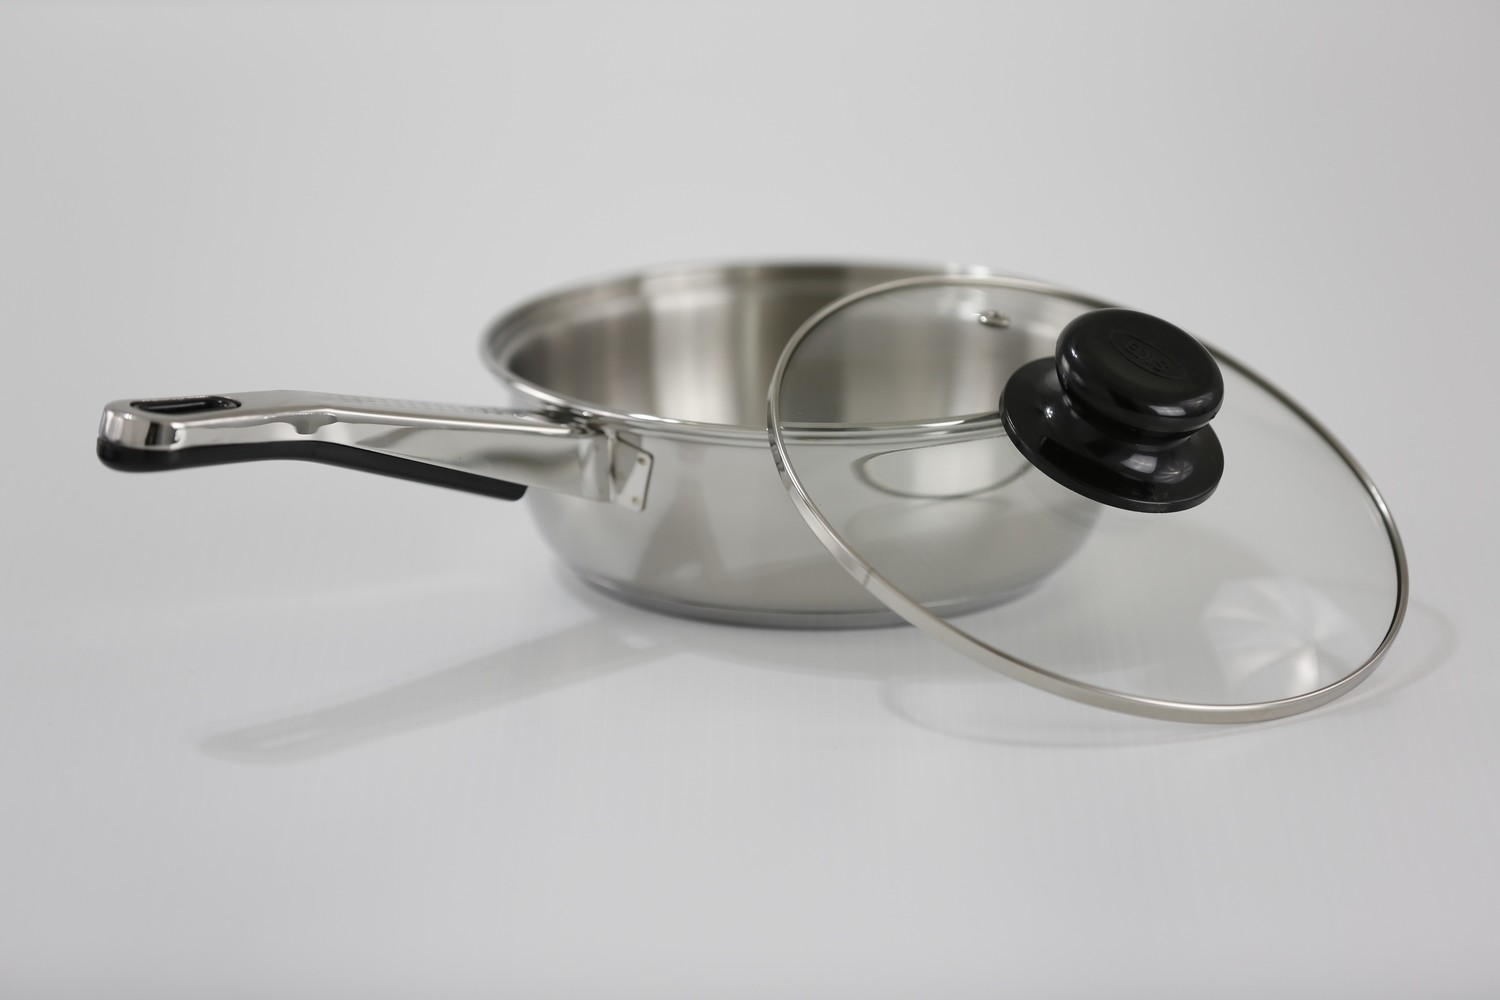 "SS1 - 7.87"" Stainless Steel Fry Pan with Glass Lid"